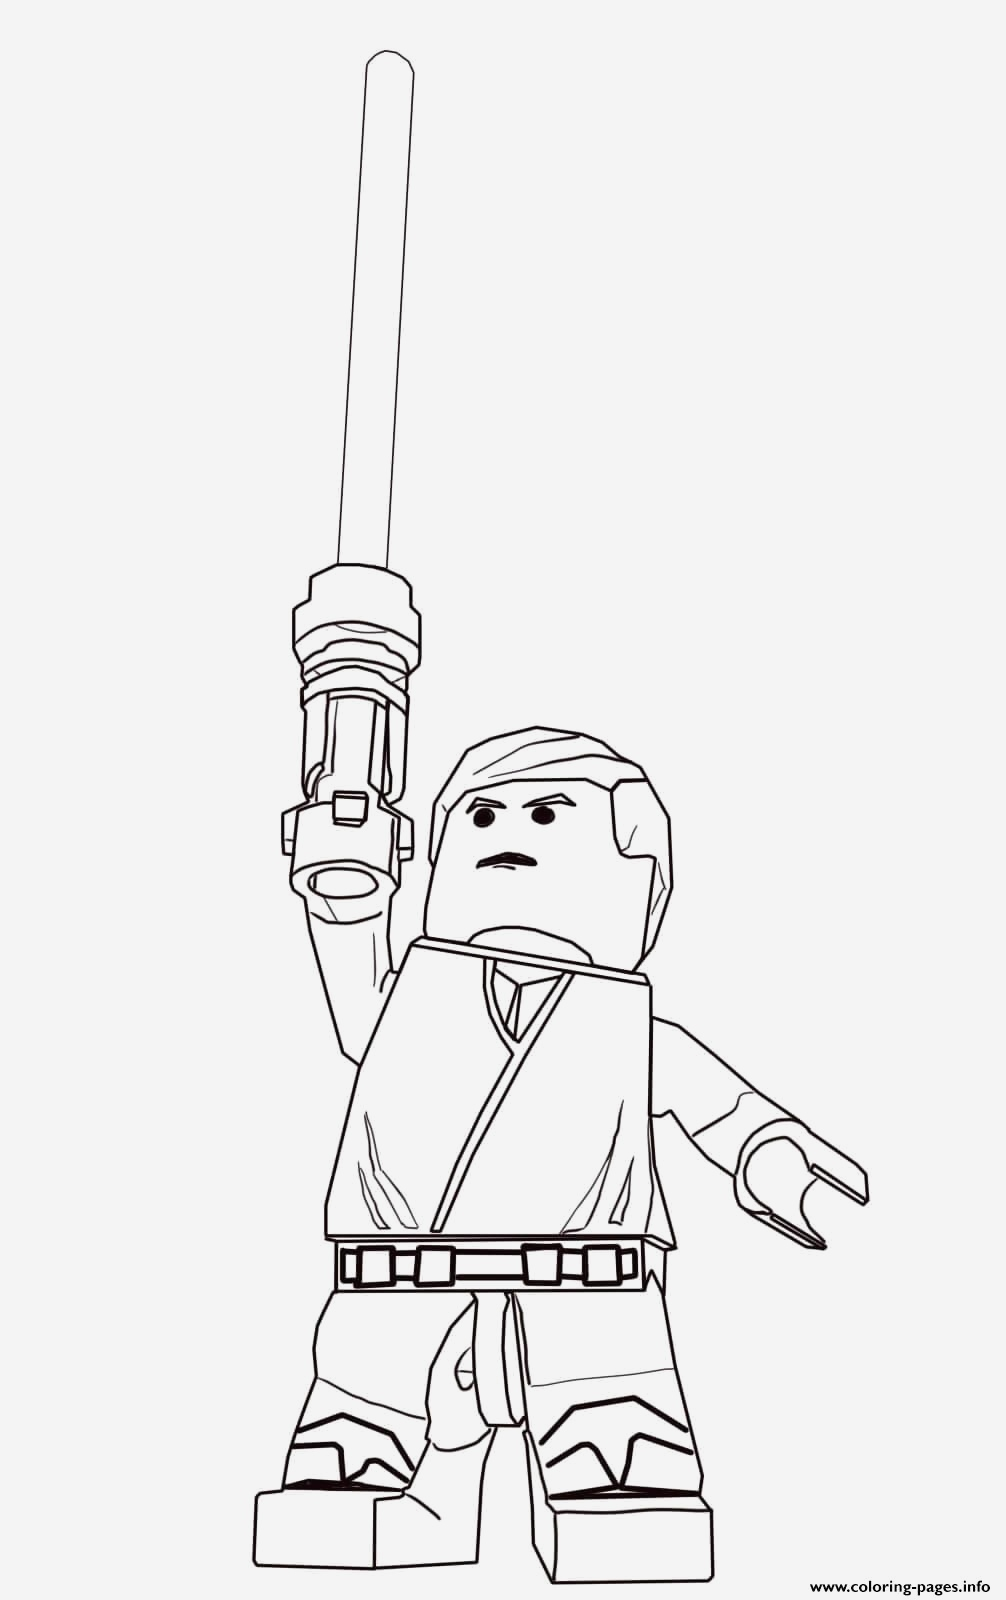 Coloriage Lego Star Wars Fresh Print Lego Star Wars Luke Skywalker Coloring Pages Of Coloriage Lego Star Wars